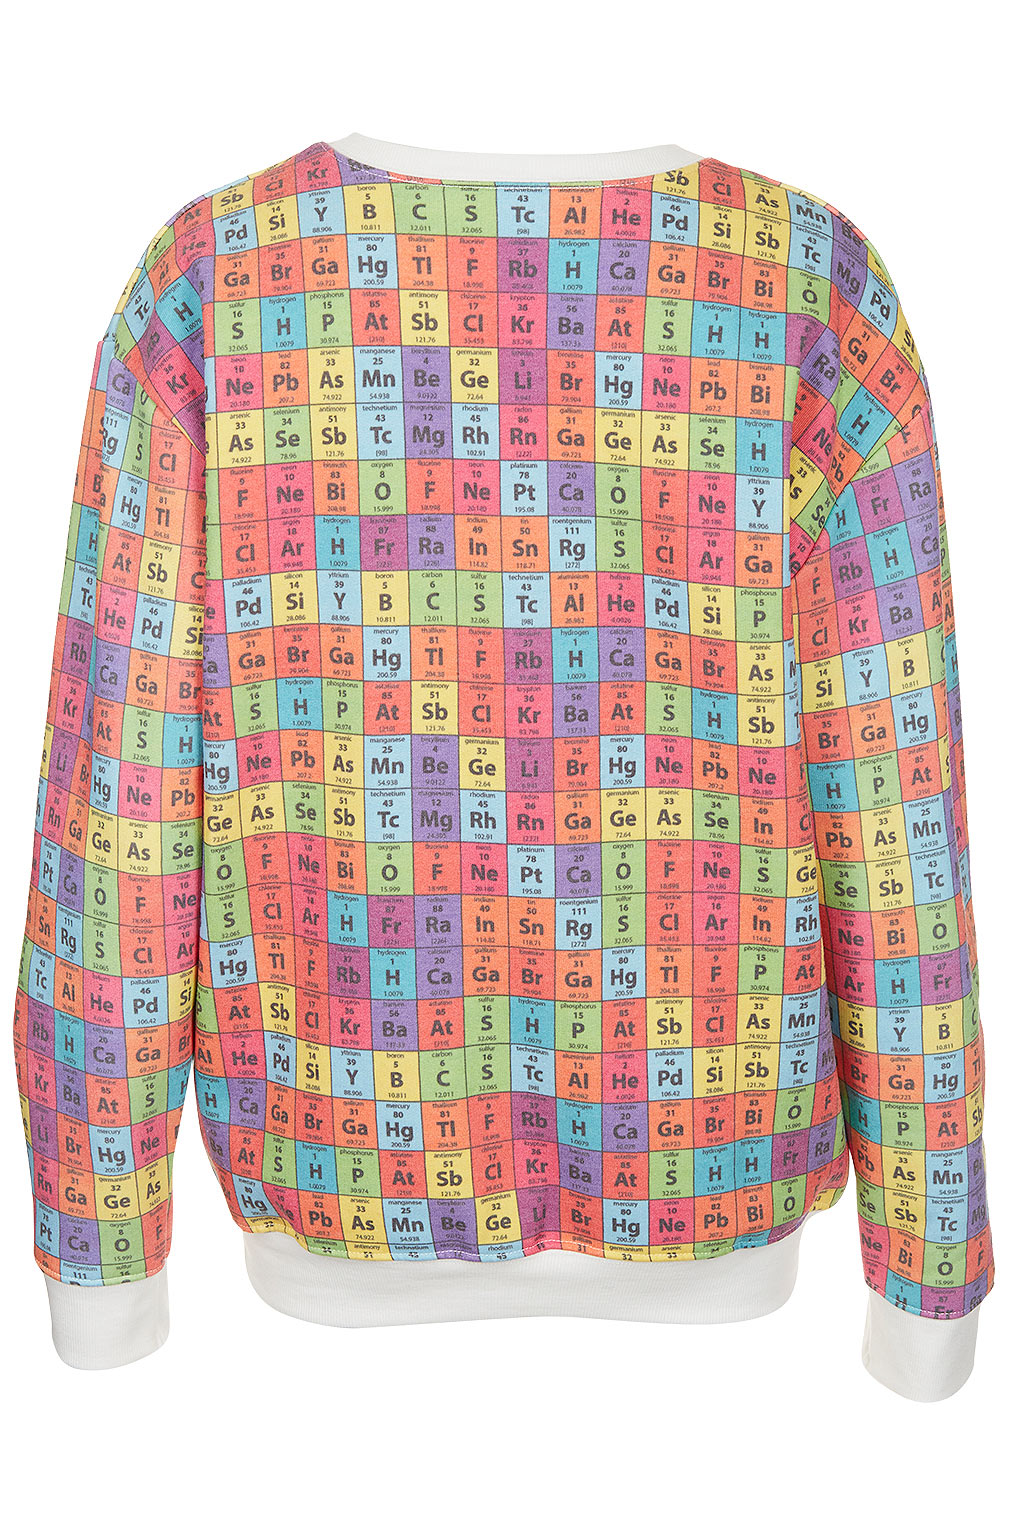 Domestic sluttery tee and cakes periodic table jumper tee and cakes periodic table jumper gamestrikefo Choice Image